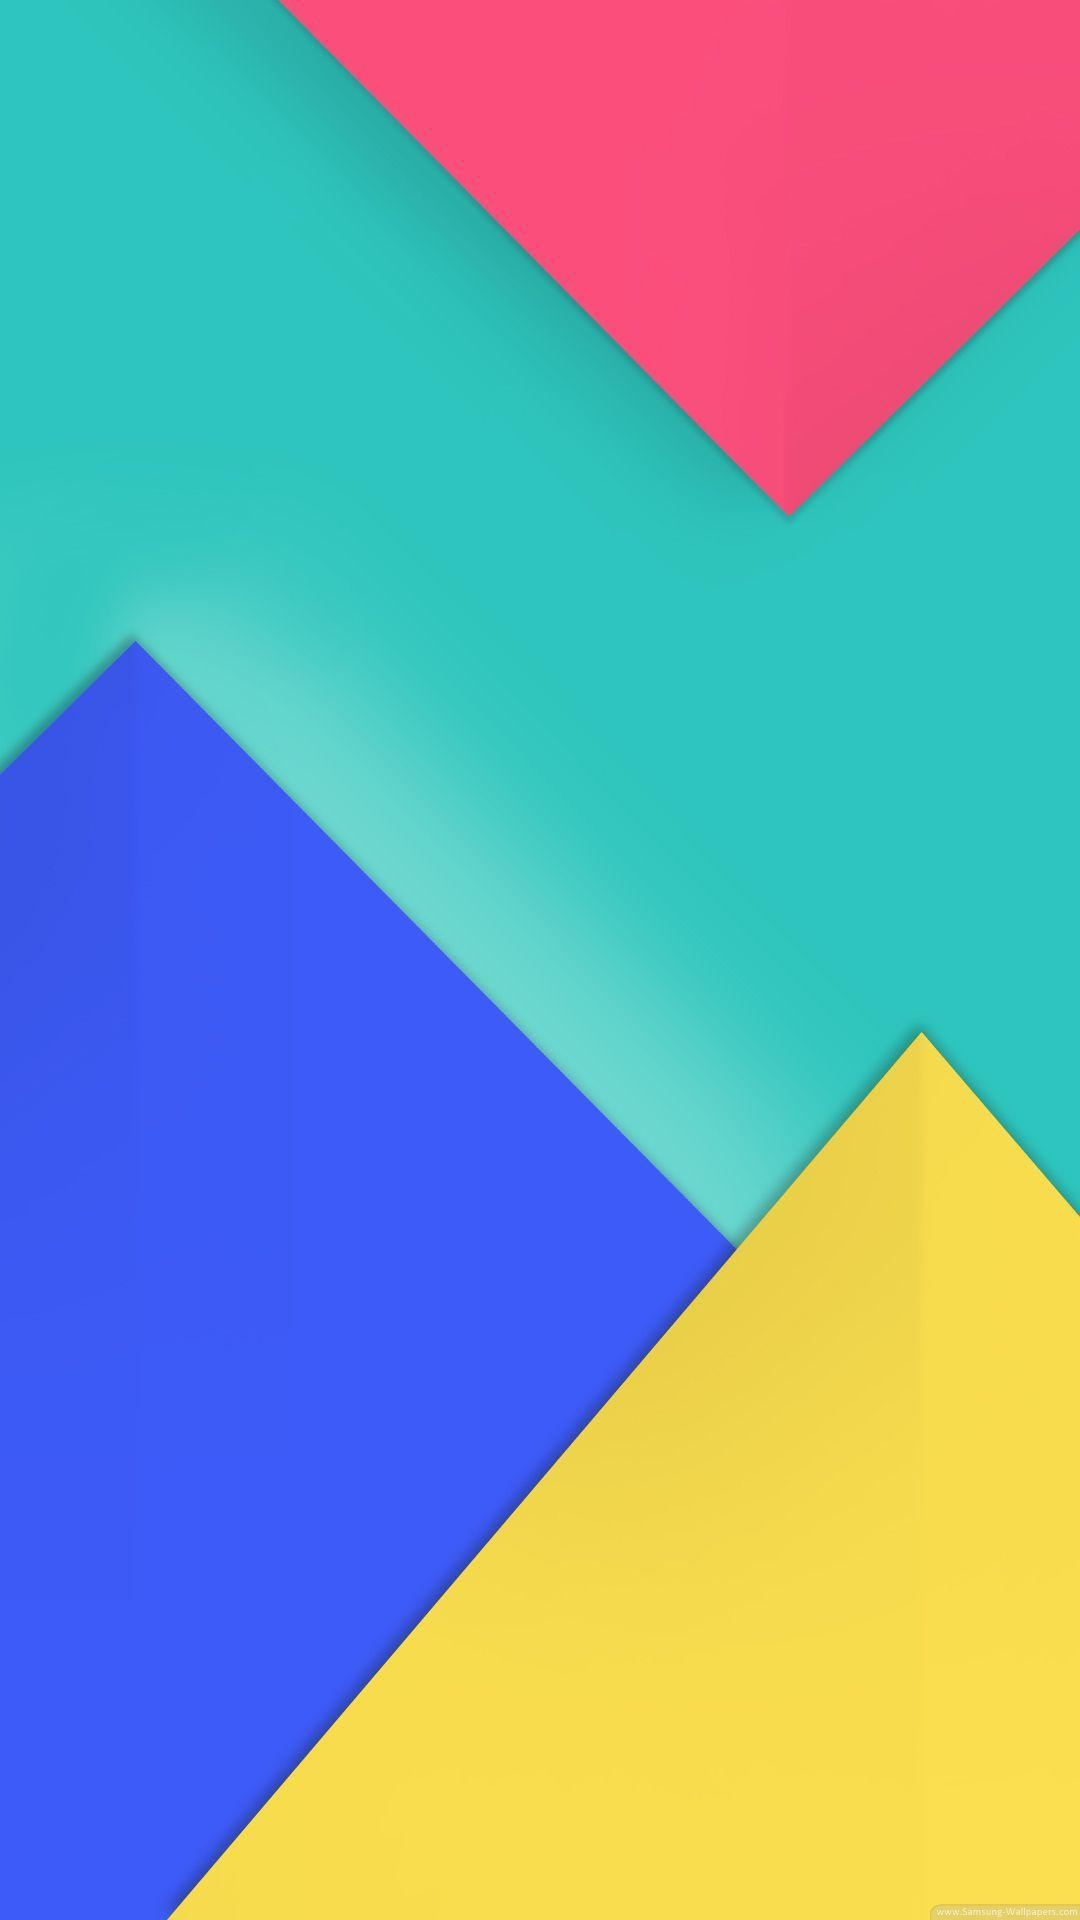 Wallpapers Elegant For Android Terbaru 2016 1080x1920